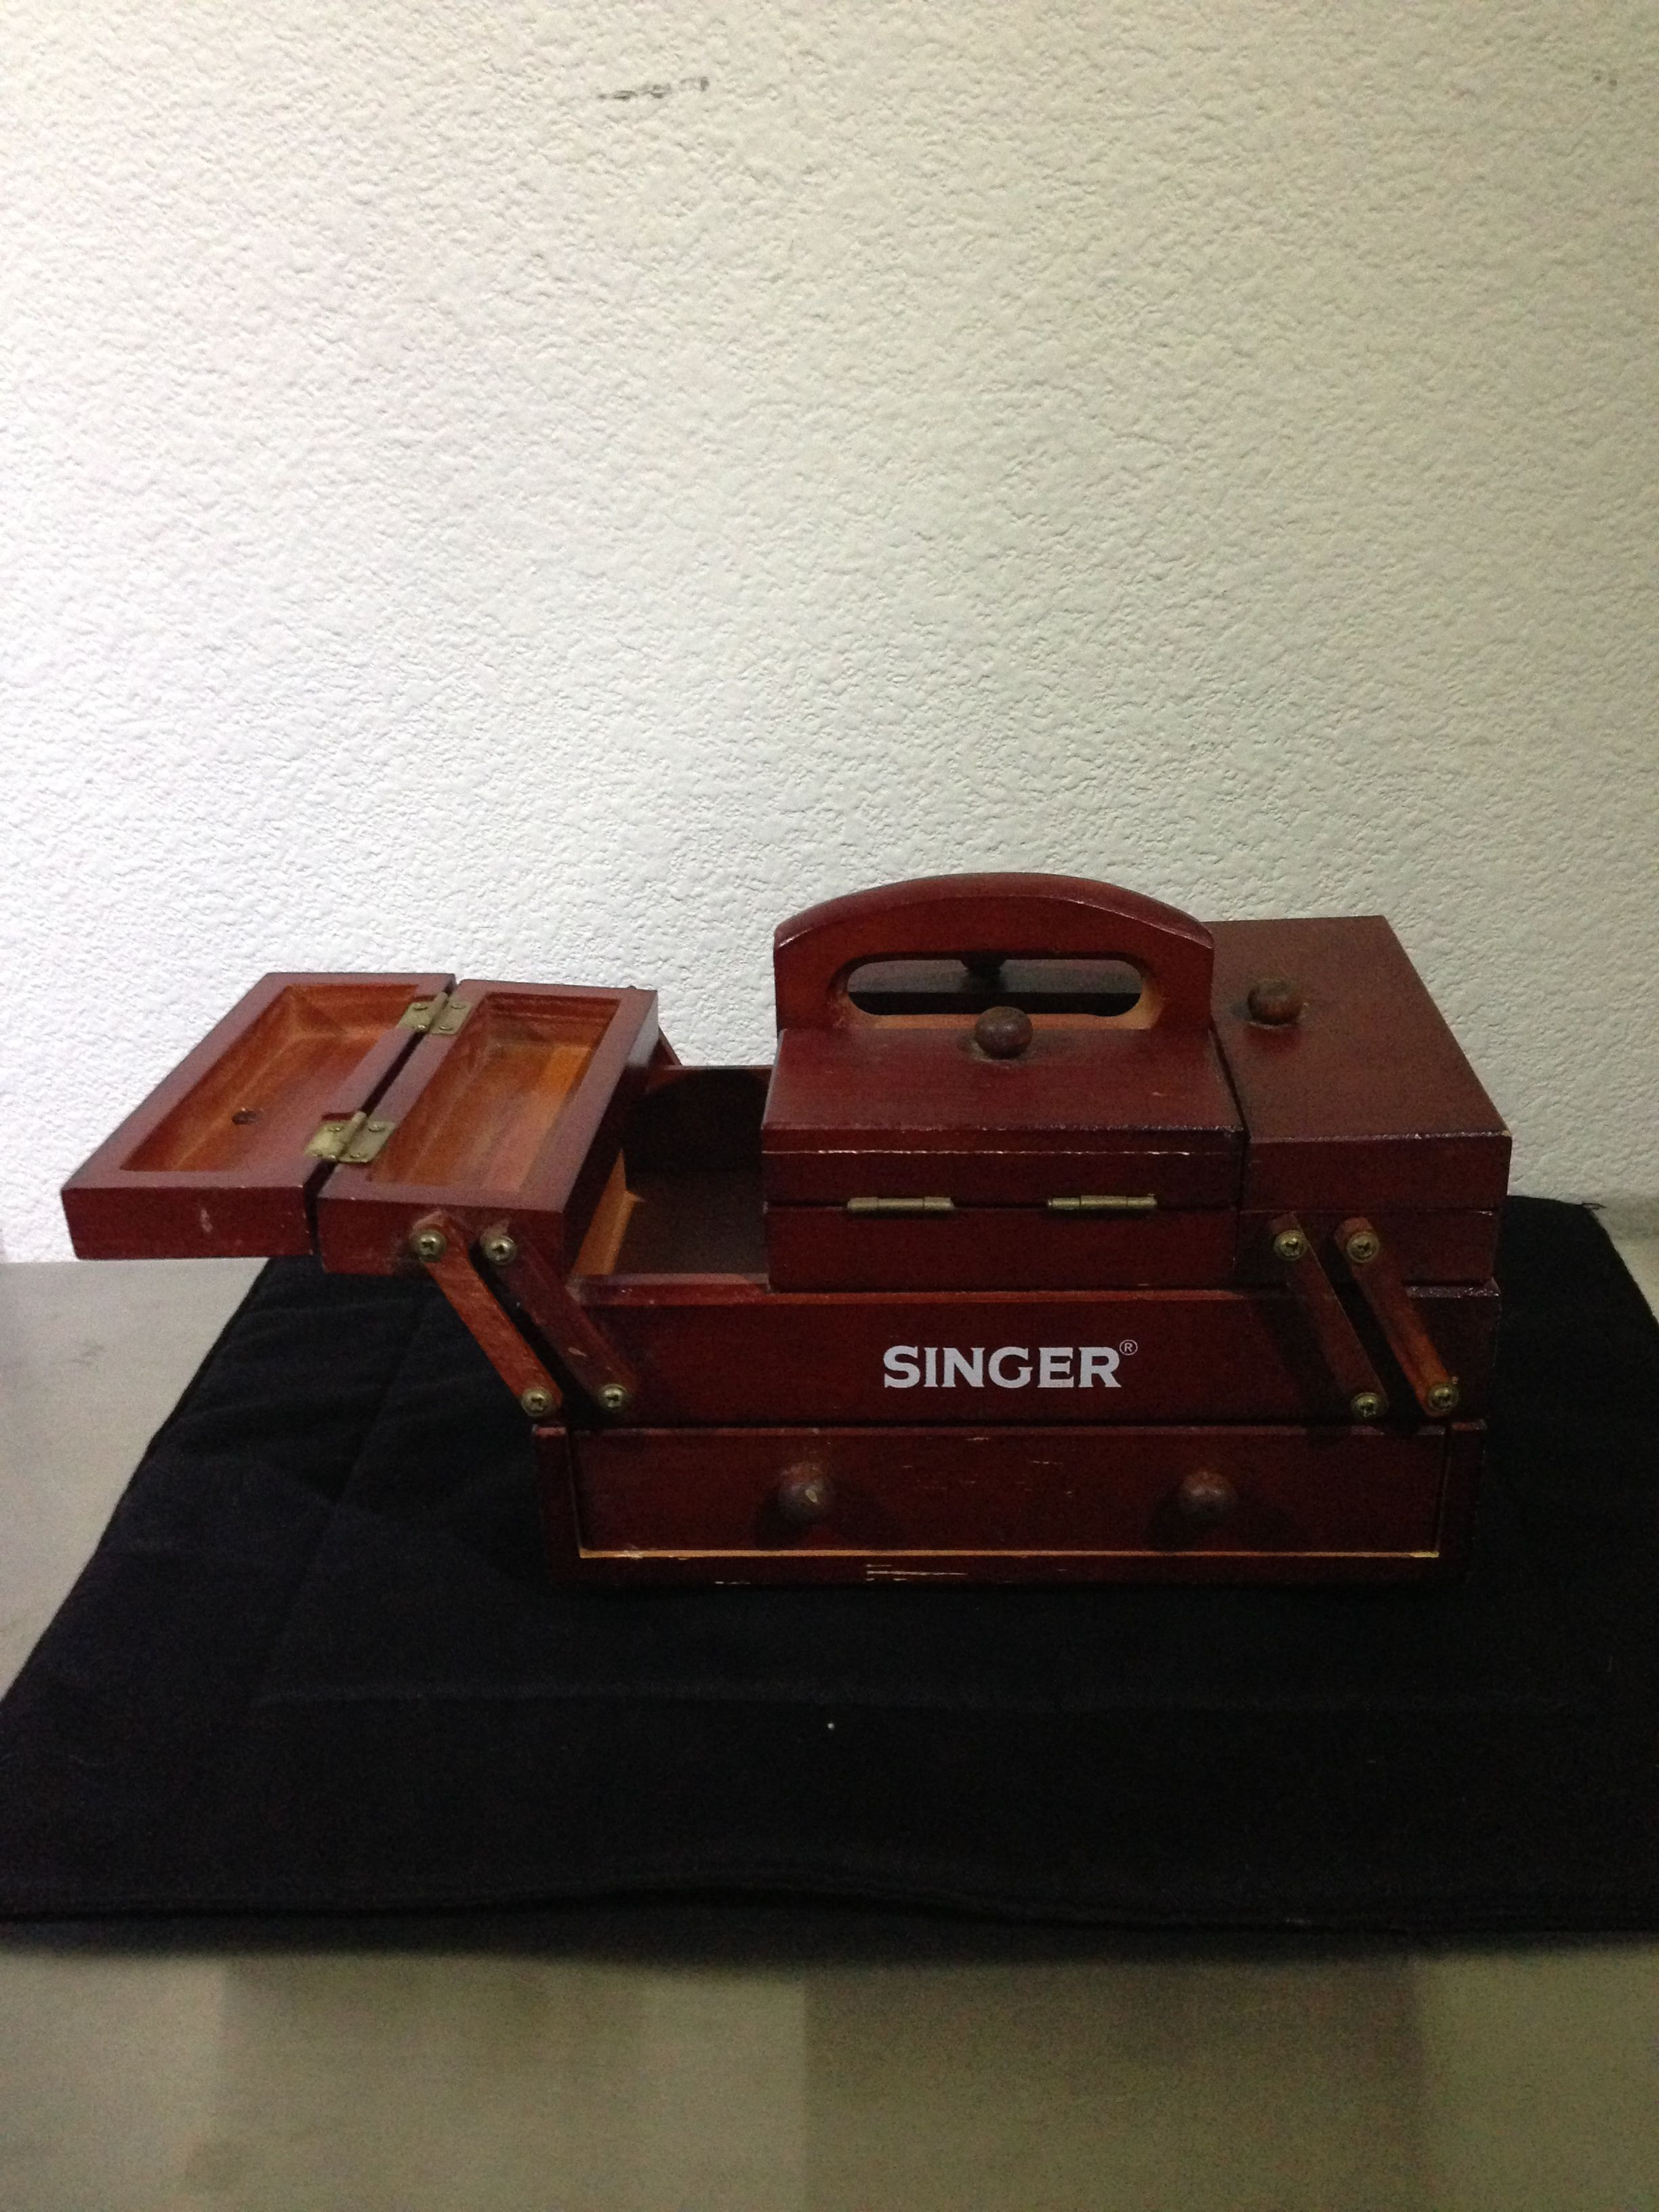 Vintage Singer wooden sewing box. Cantilever accordion style. $25 eBay & Vintage Singer wooden sewing box. Cantilever accordion style. $25 ... Aboutintivar.Com